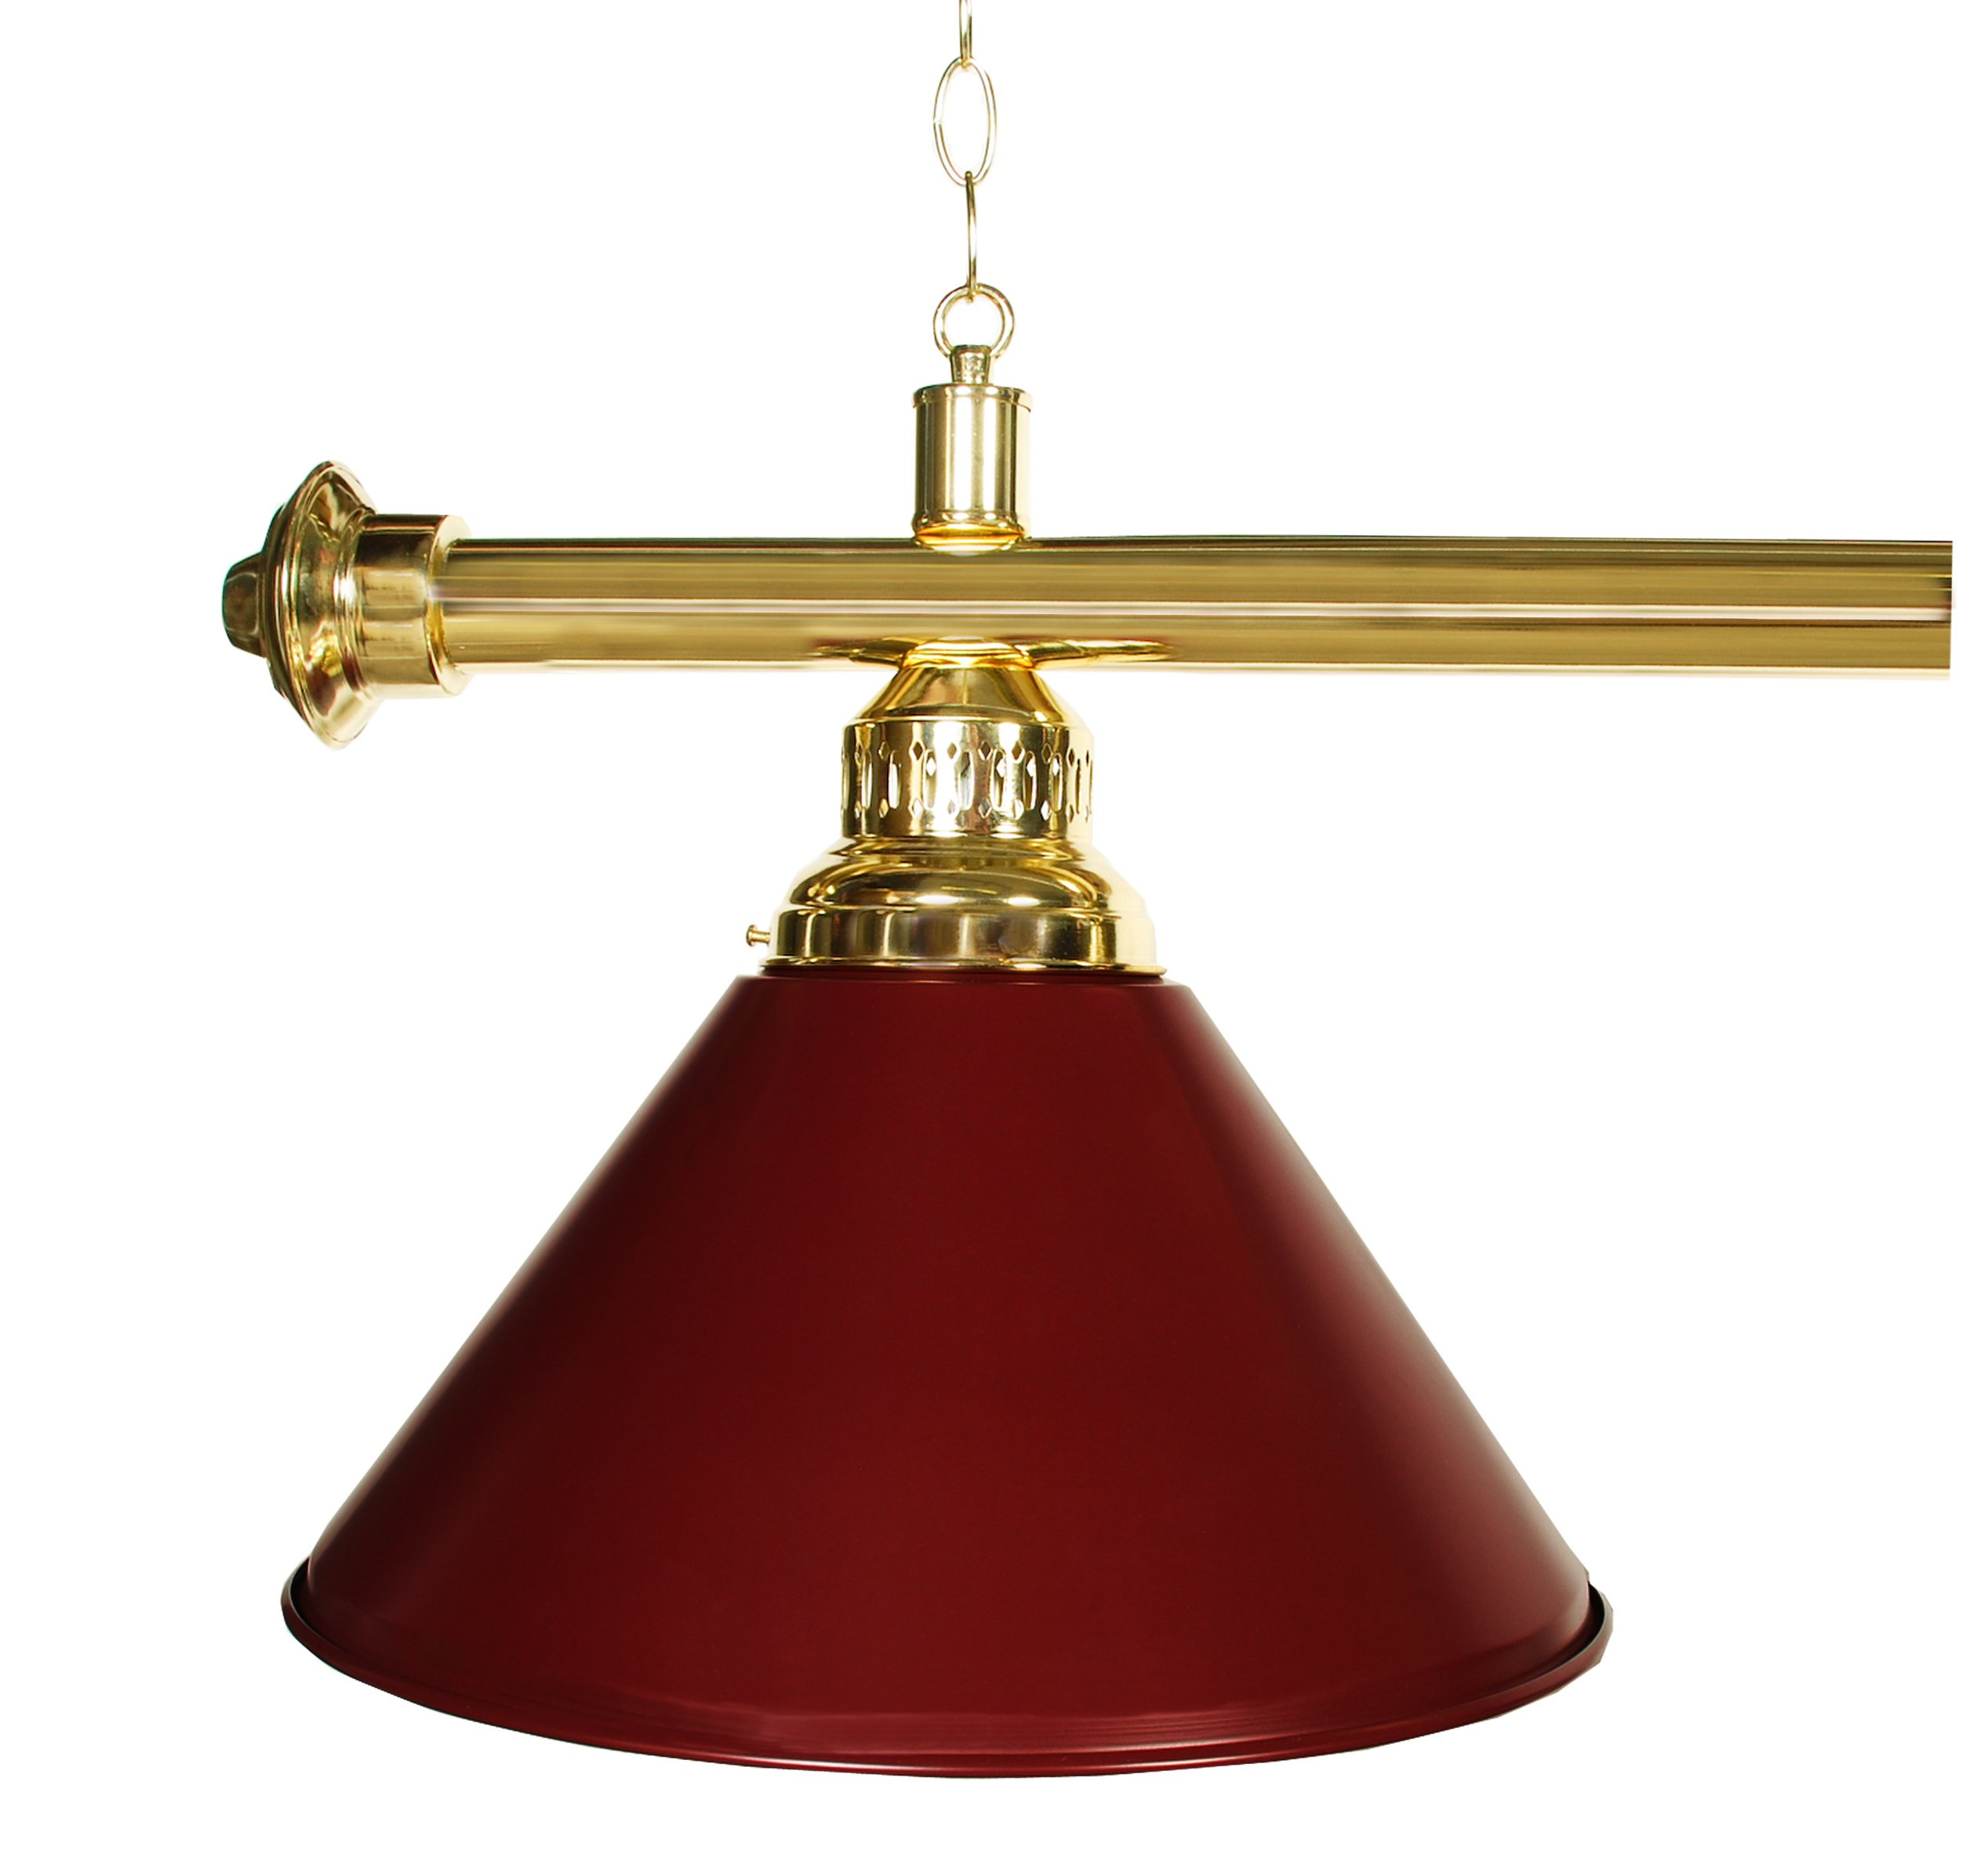 61'' Pool Table Light - Billiard Lamp Brass Rod Choose Burgandy, Green or Black Metal Shades (brass burgundy) by Iszy Billiards (Image #2)